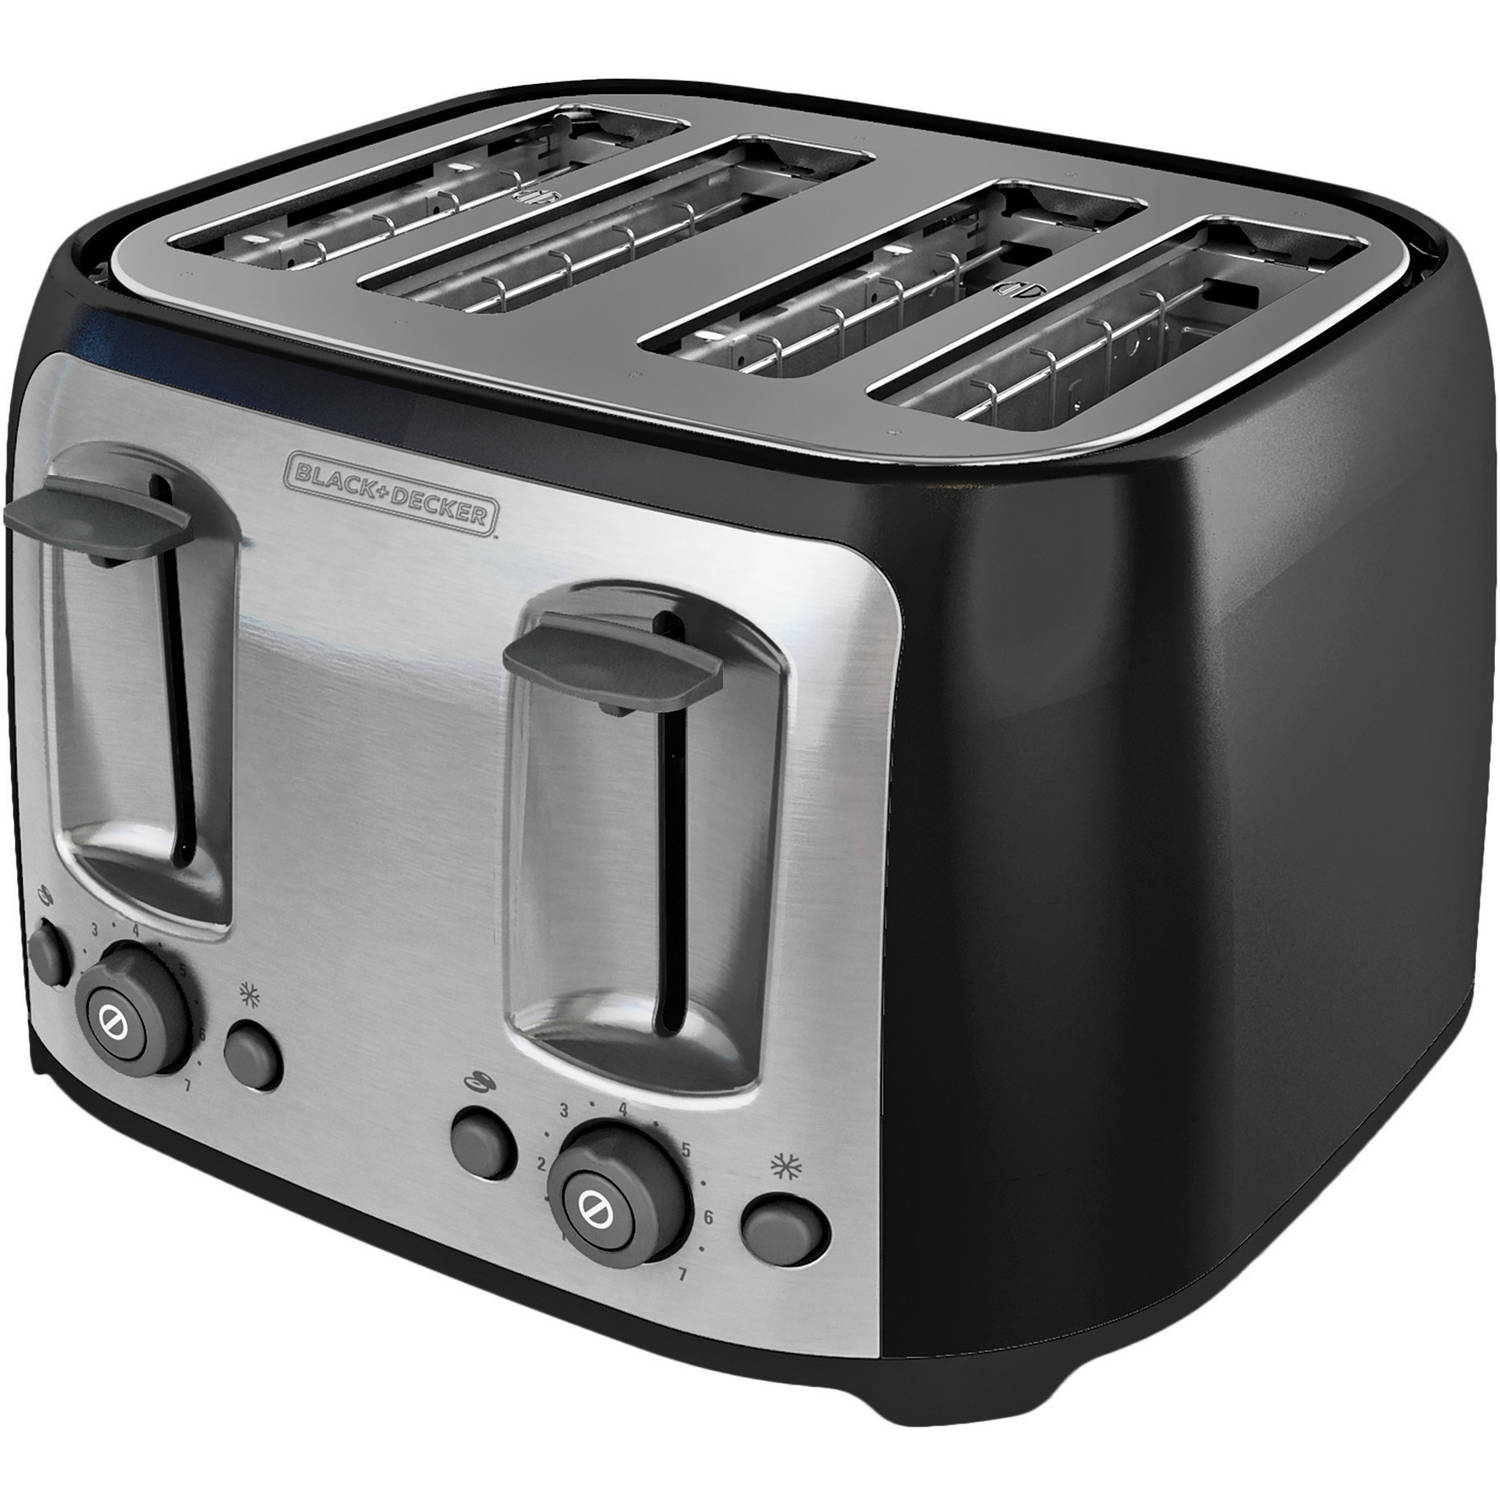 bath light stainless slot toaster full beyond bed size steel u led kalorik with toastmaster controls of slice tmts dual amazoncom kenmore